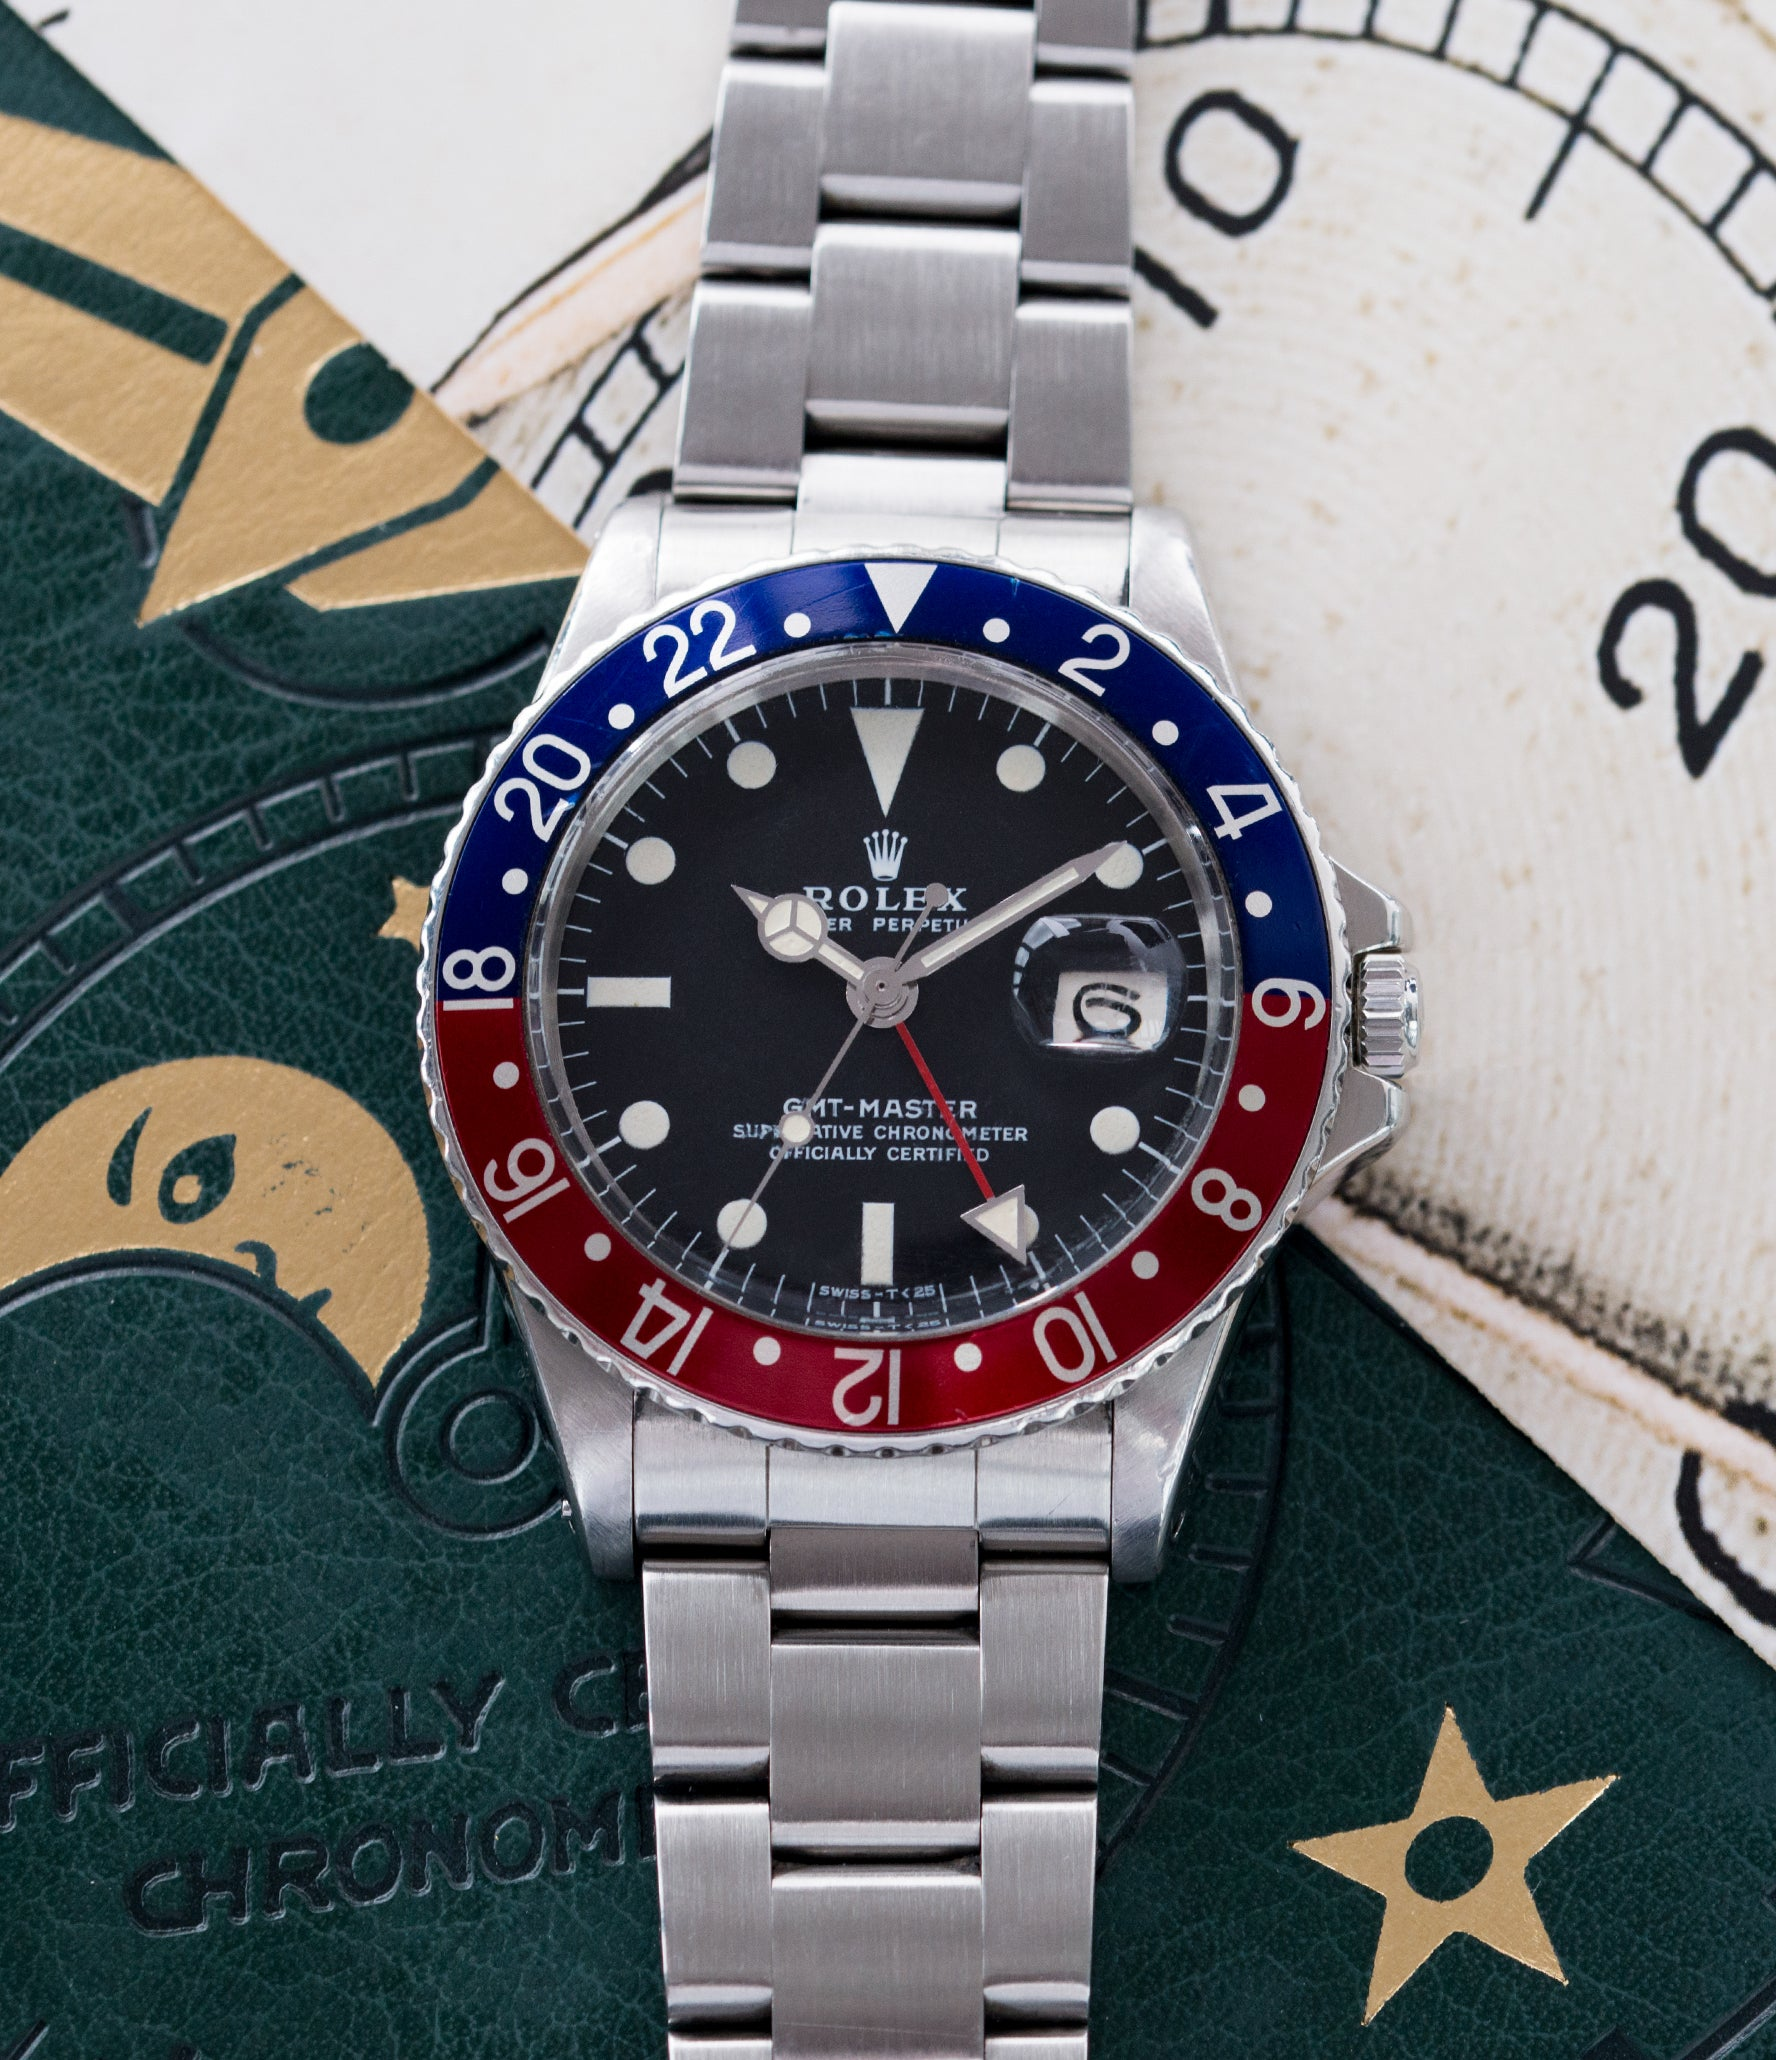 selling vintage Rolex GMT Master 1675 steel traveller sport watch Pepsi bezel for sale online at A Collected Man London vintage watch specialist